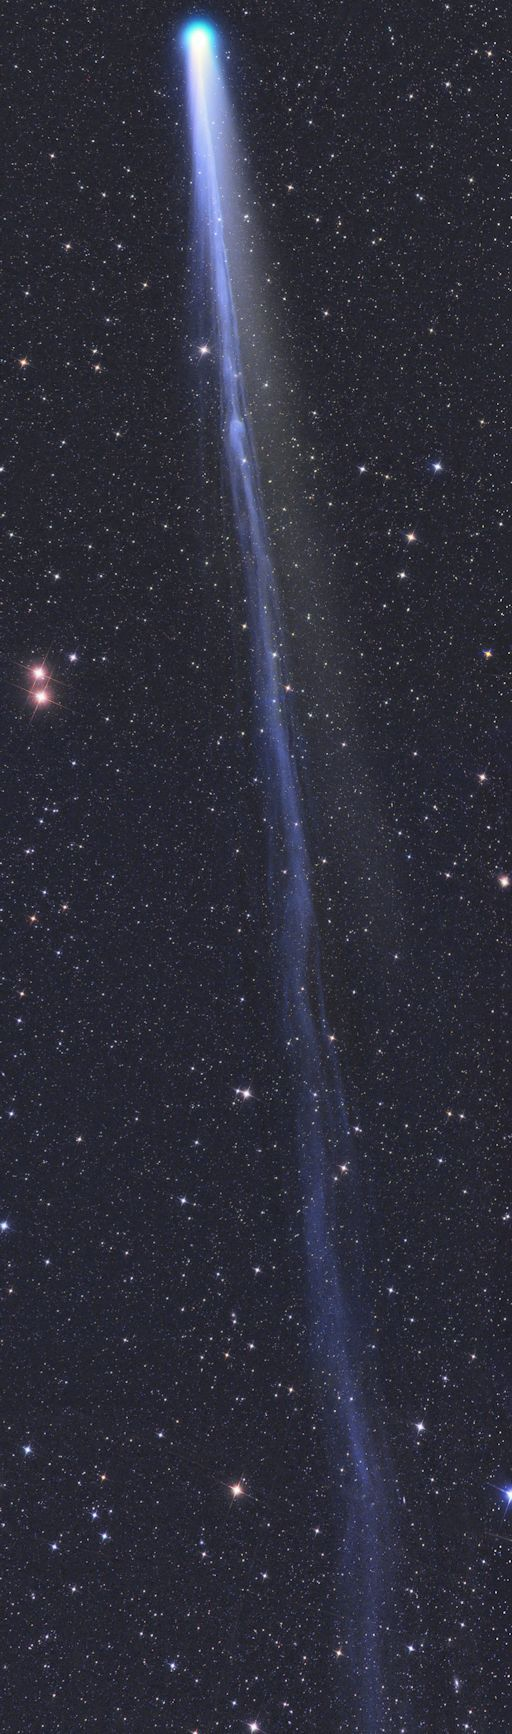 THE LONG TAIL OF COMET.